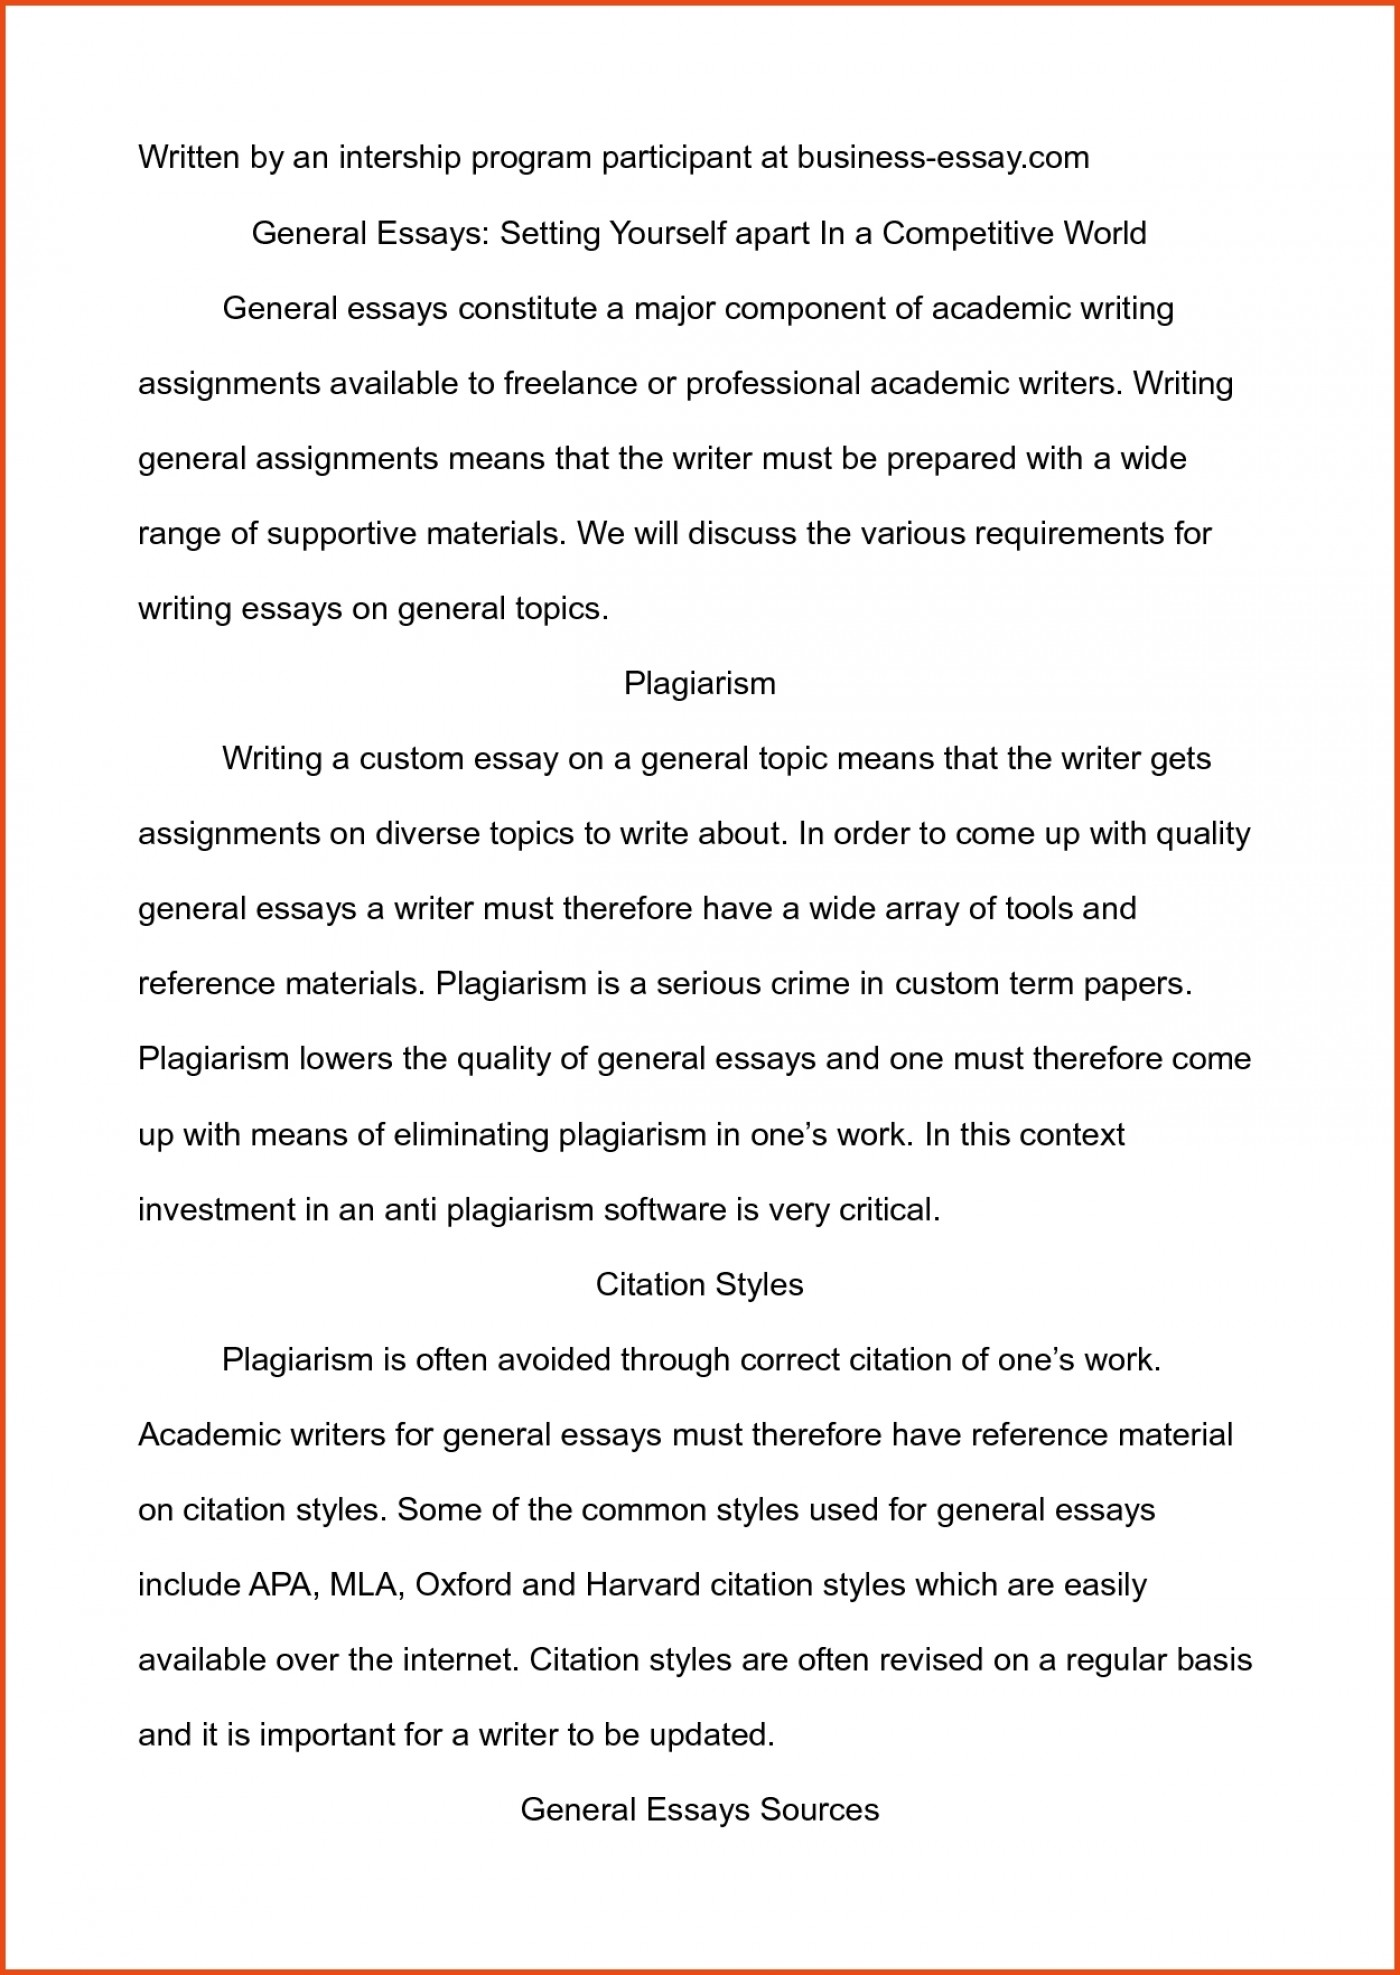 010 College Essays About Yourself Writings And Introducing Myself Introduce Intende Writing Fearsome Essay Example Examples A Application 1400